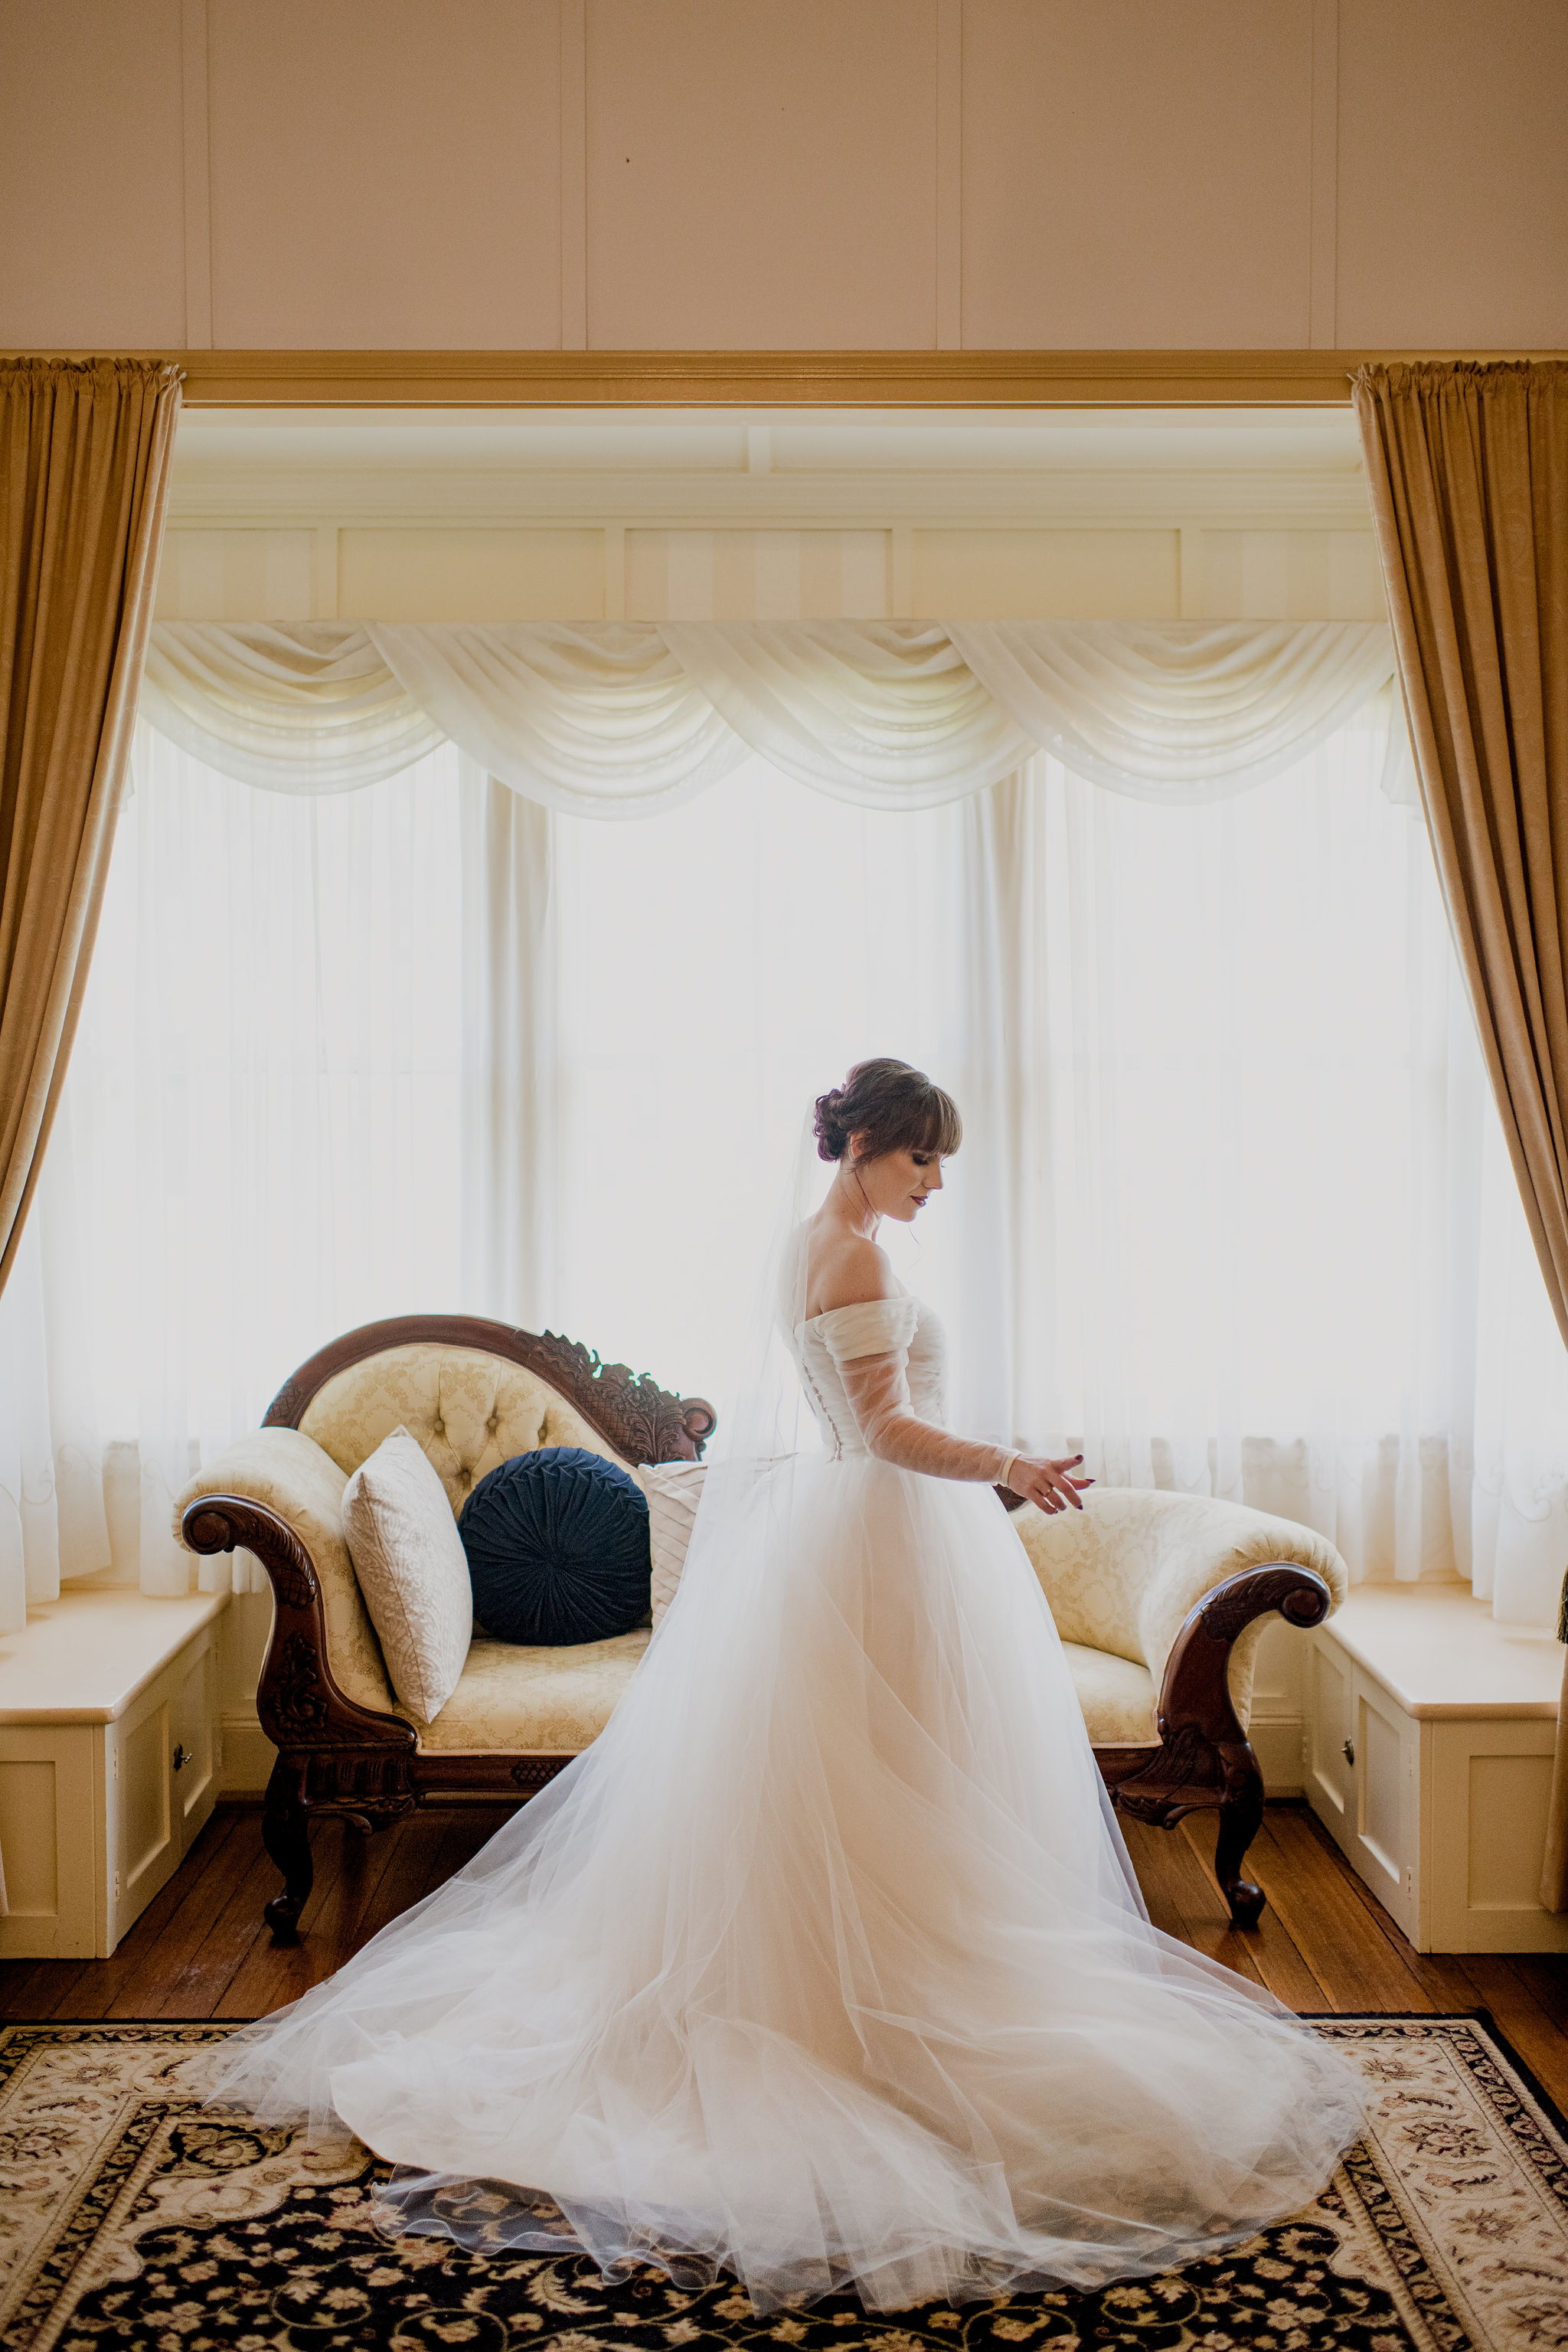 Bride in wedding dress posing in front of a large windowsill